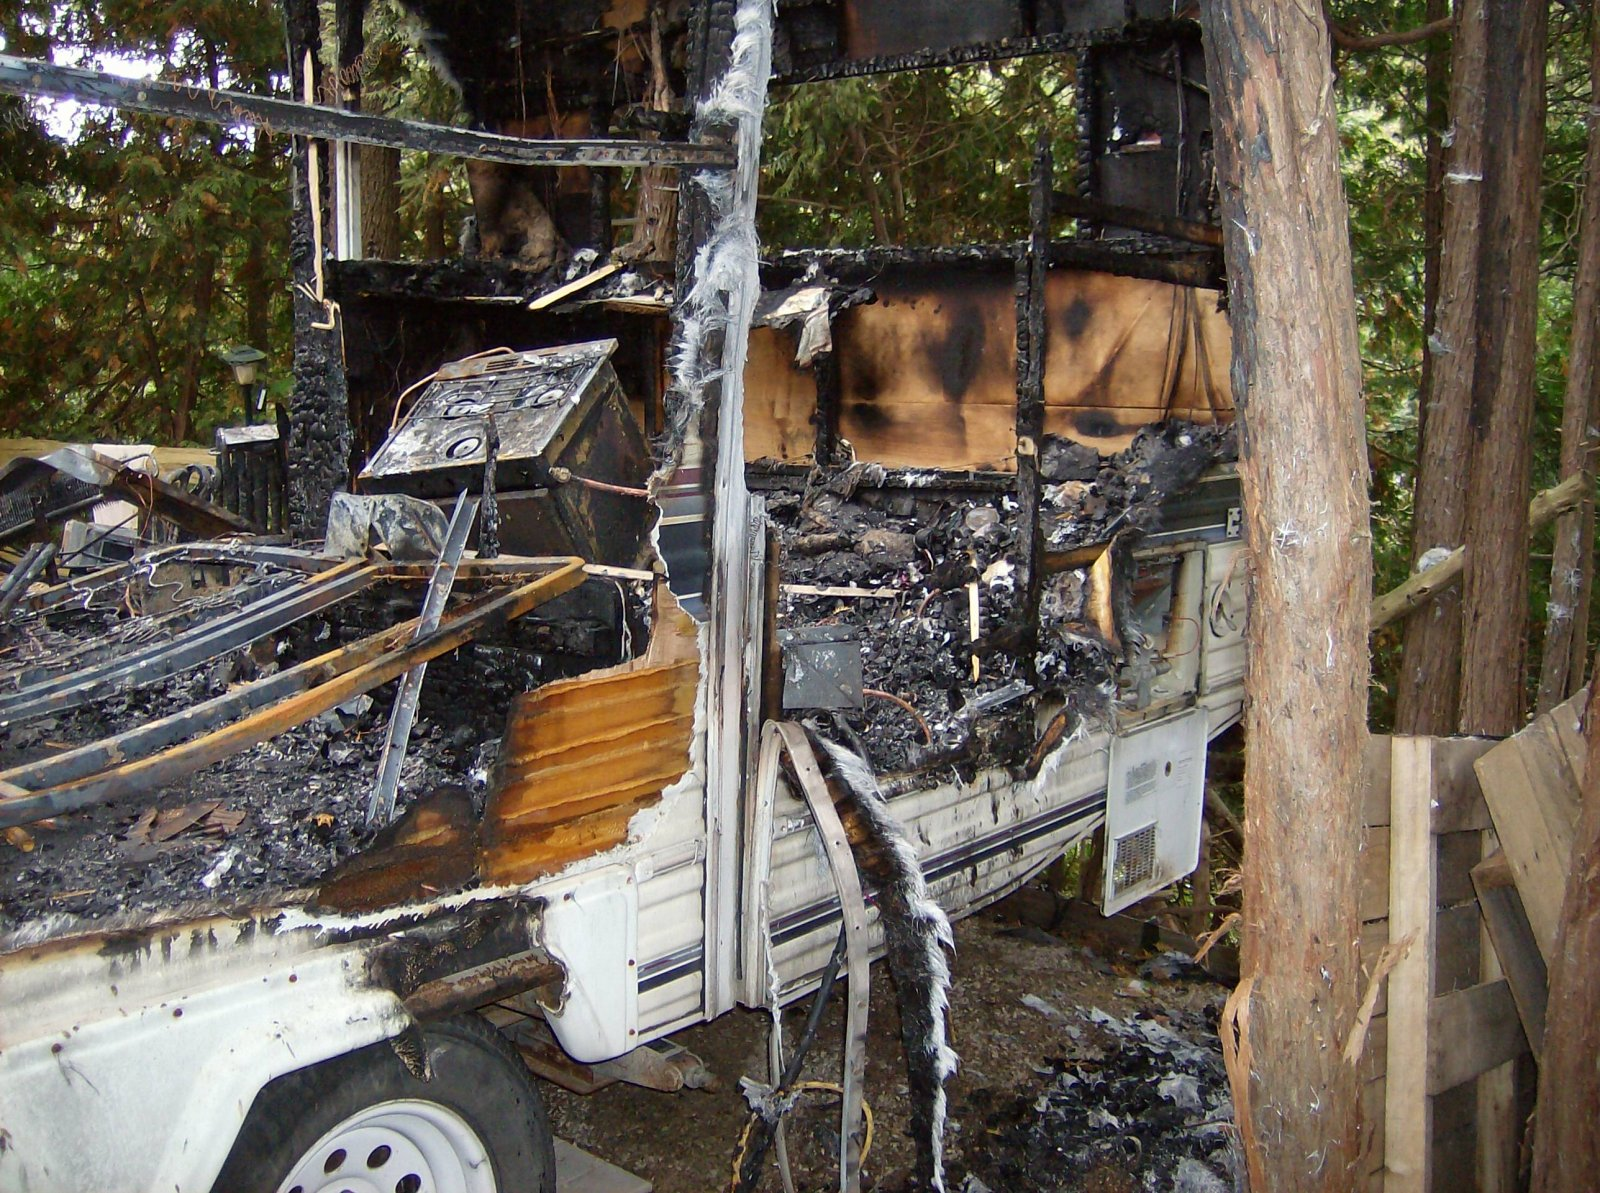 Click image for larger version  Name:Fire Damaged Trailer 011.jpg Views:101 Size:511.9 KB ID:112195